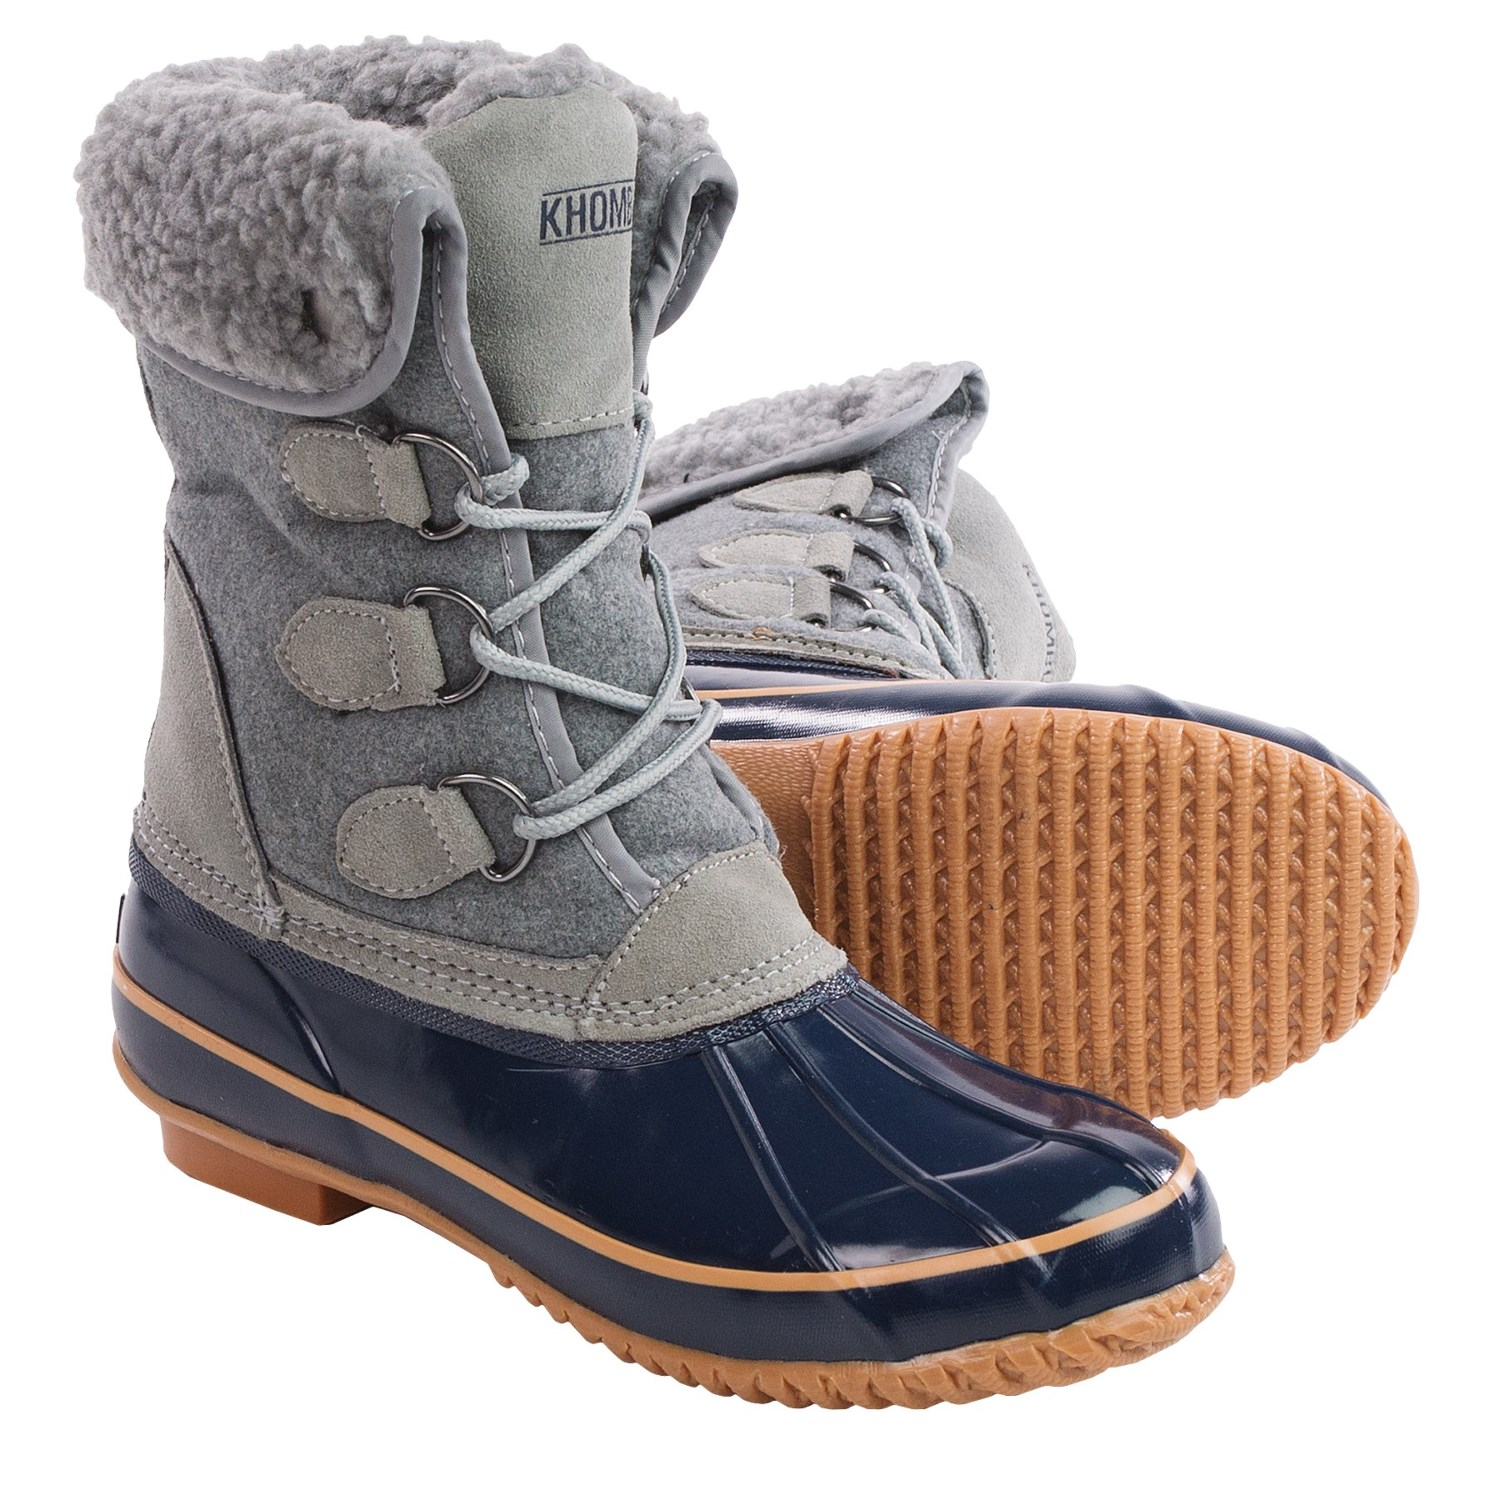 Khombu Jilly Snow Boots (For Women) - Save 79%